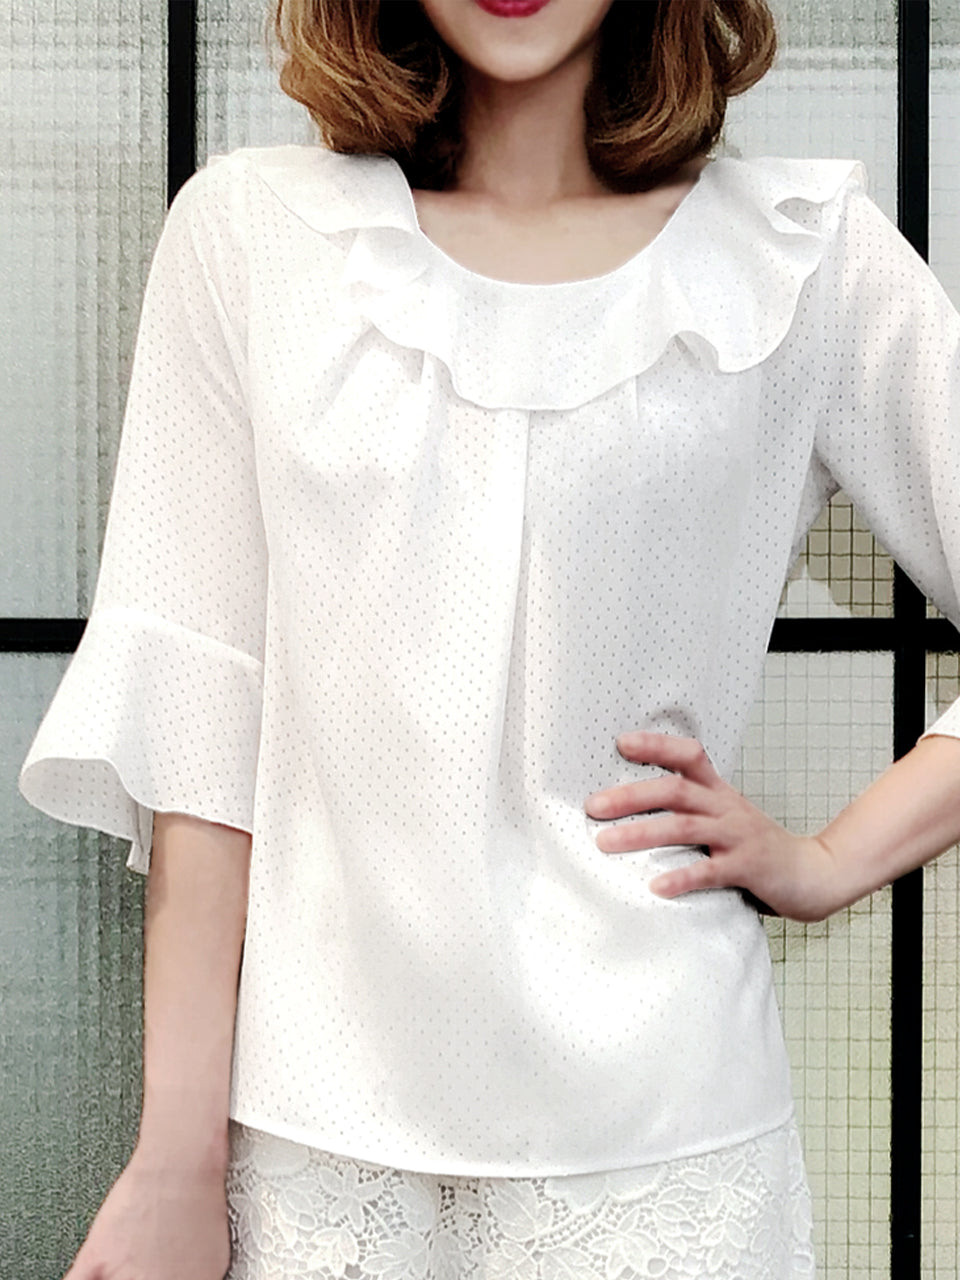 Further Sale! Tiny Cut-out Dots White Ruffle Collar Blouse